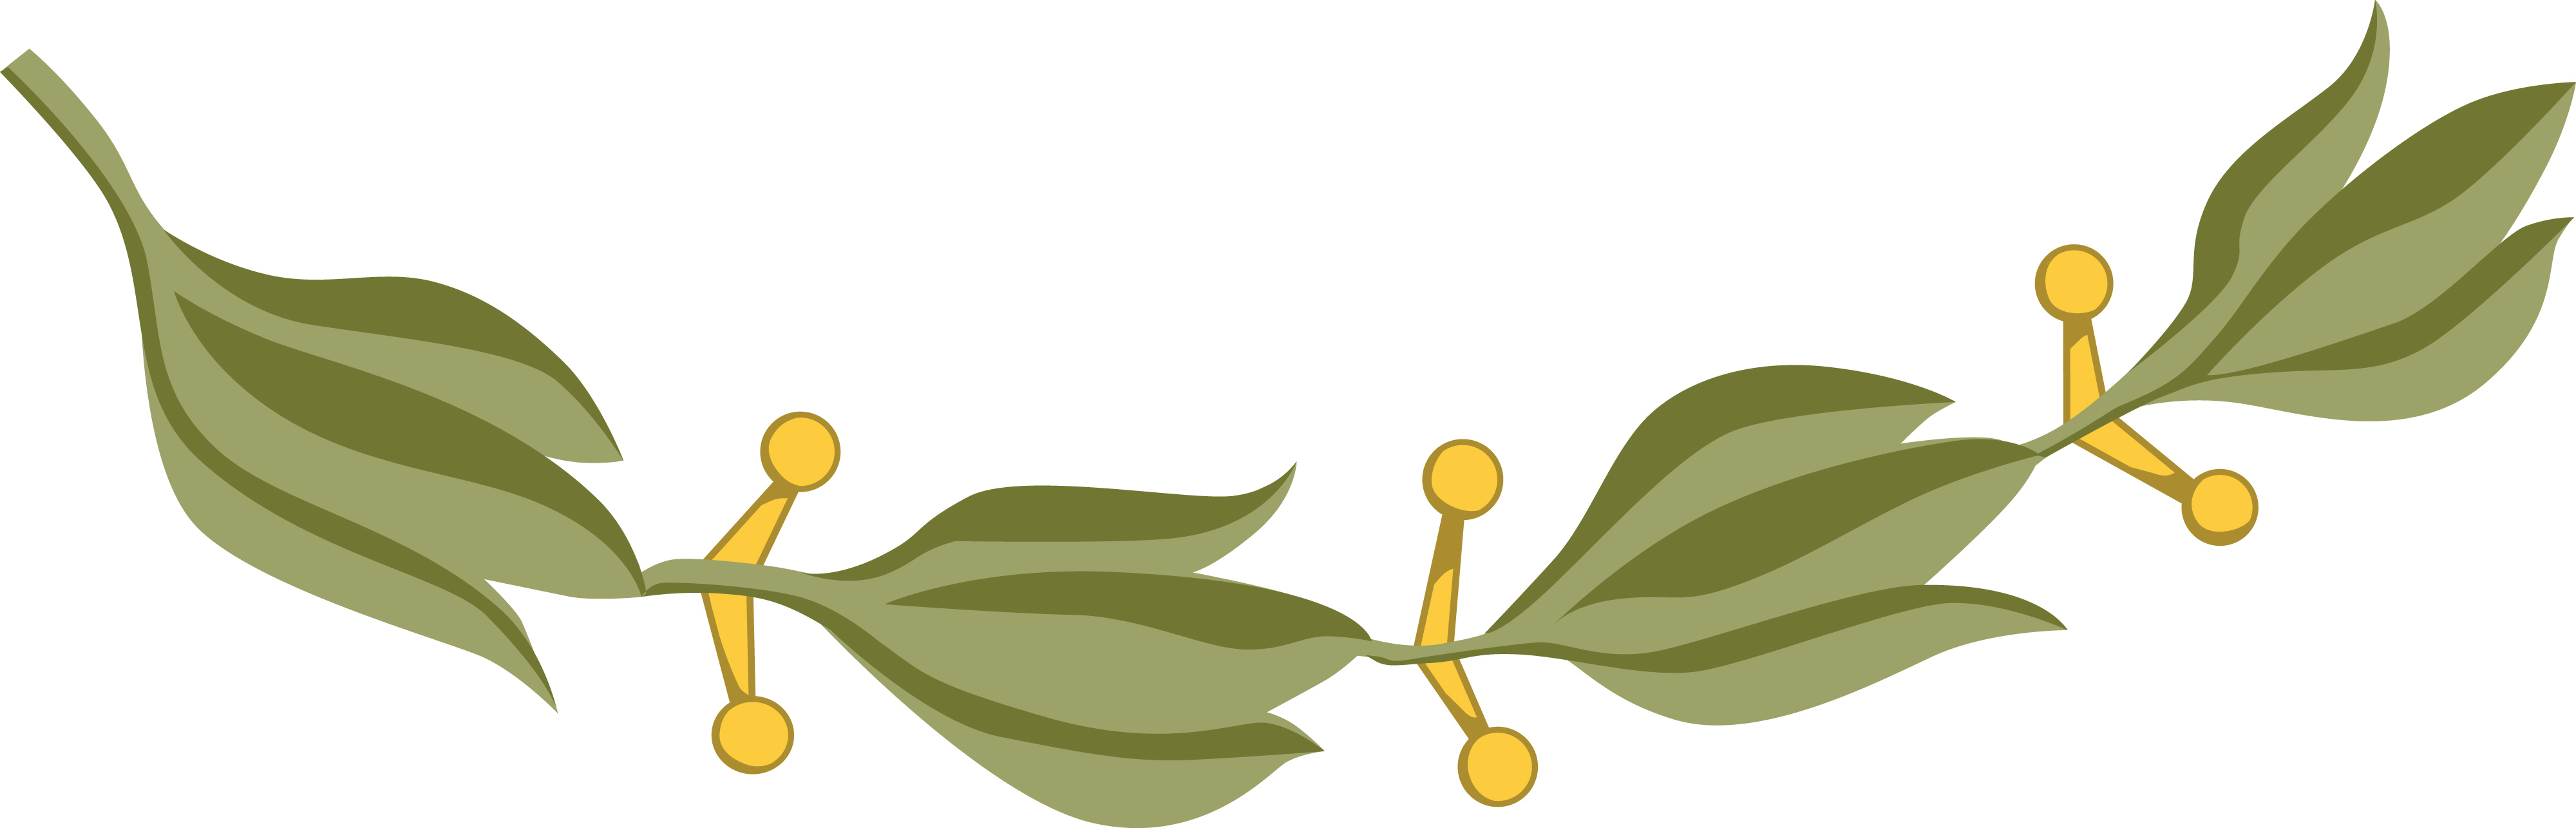 4000x1285 Clipart Of A Design Element Of Laurel Leaves